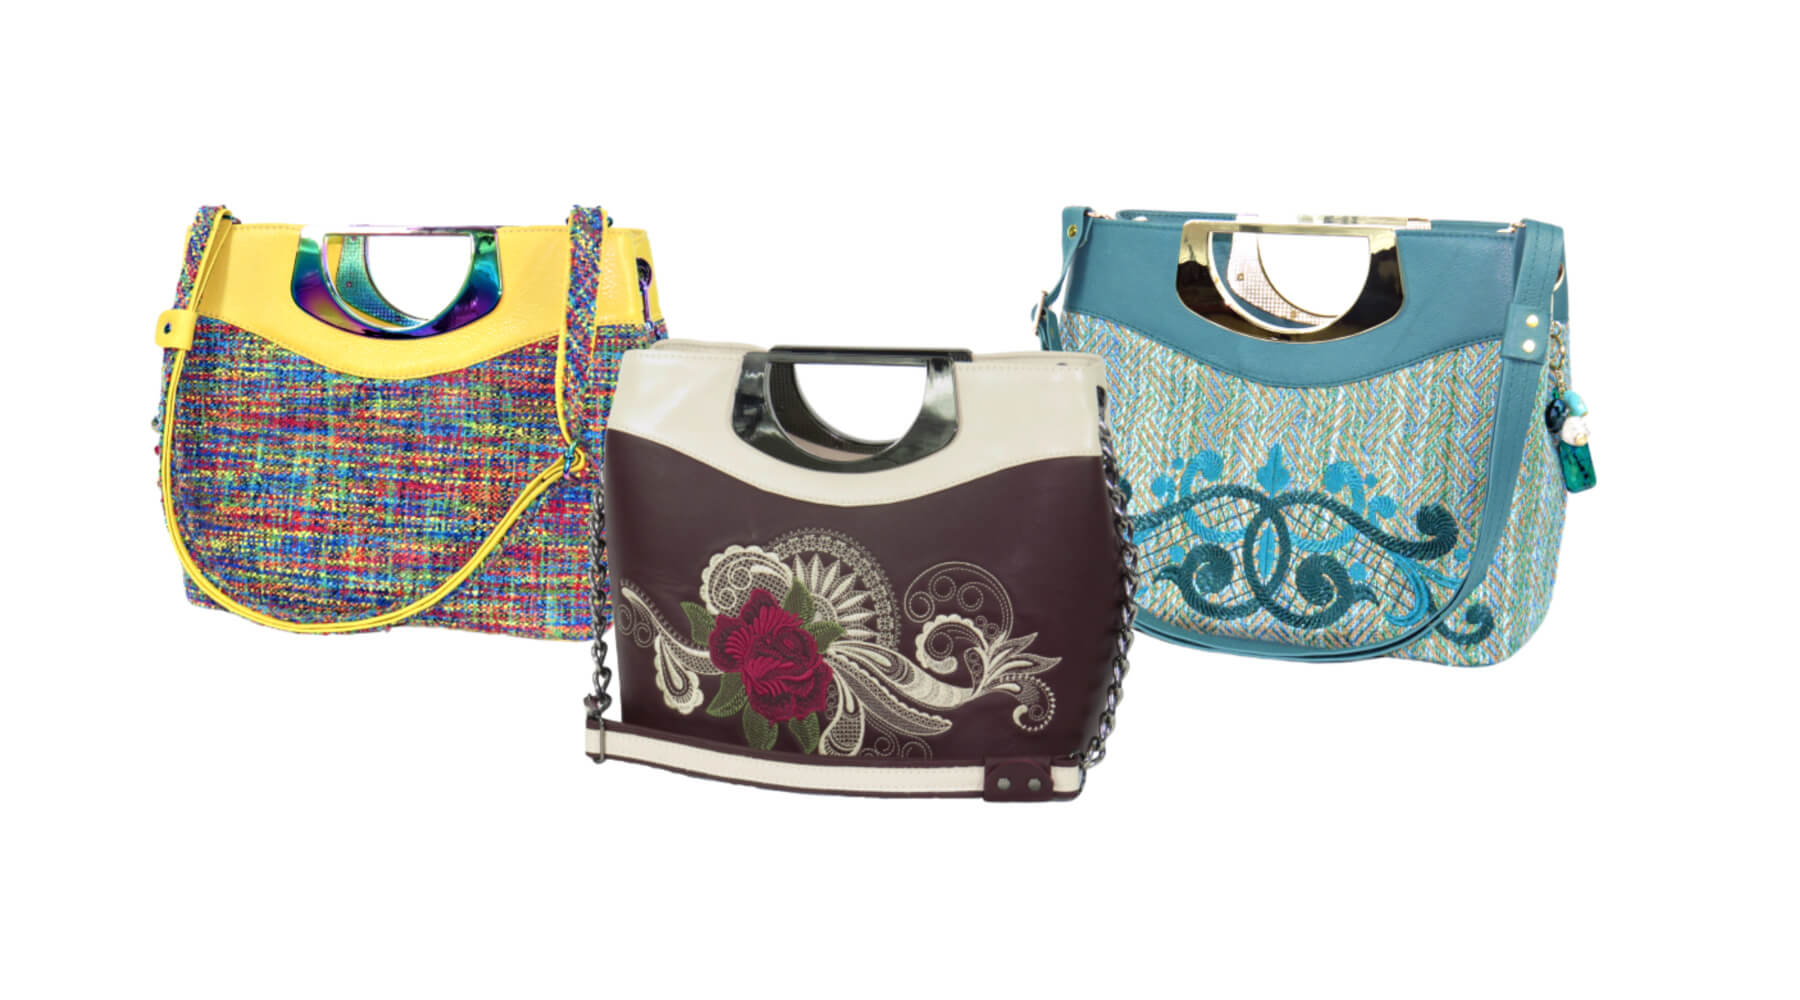 Fifth Avenue Leather and Tapestry Handbags made in USA